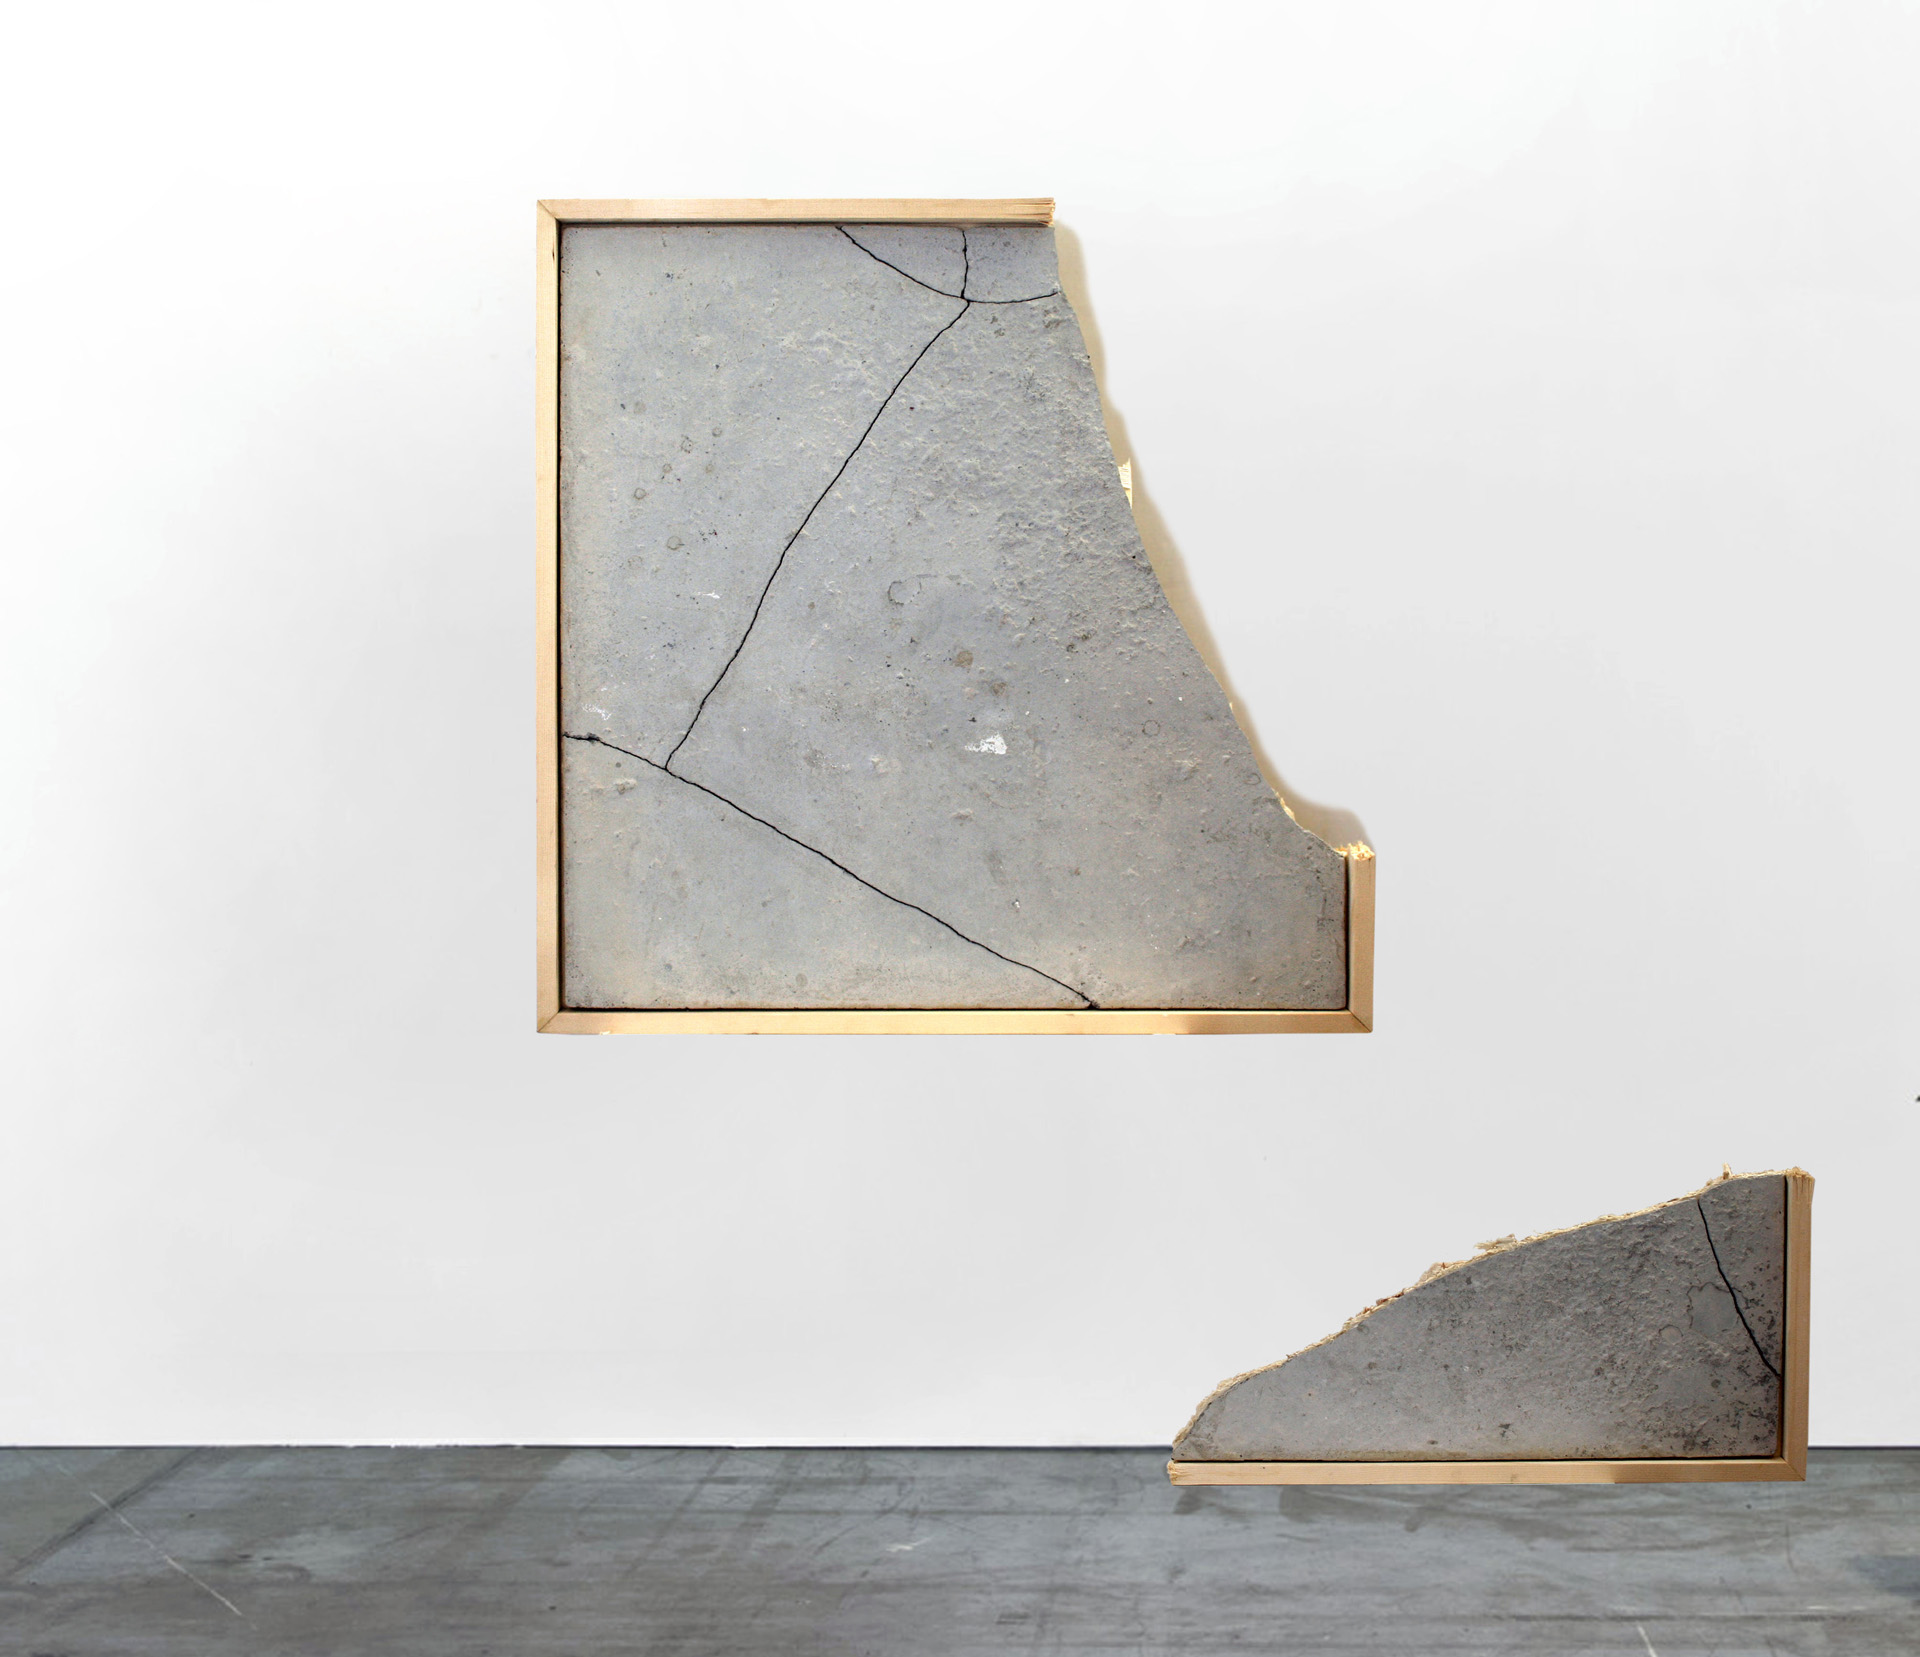 MQ - 2016, 105x105cm, Concrete and wood